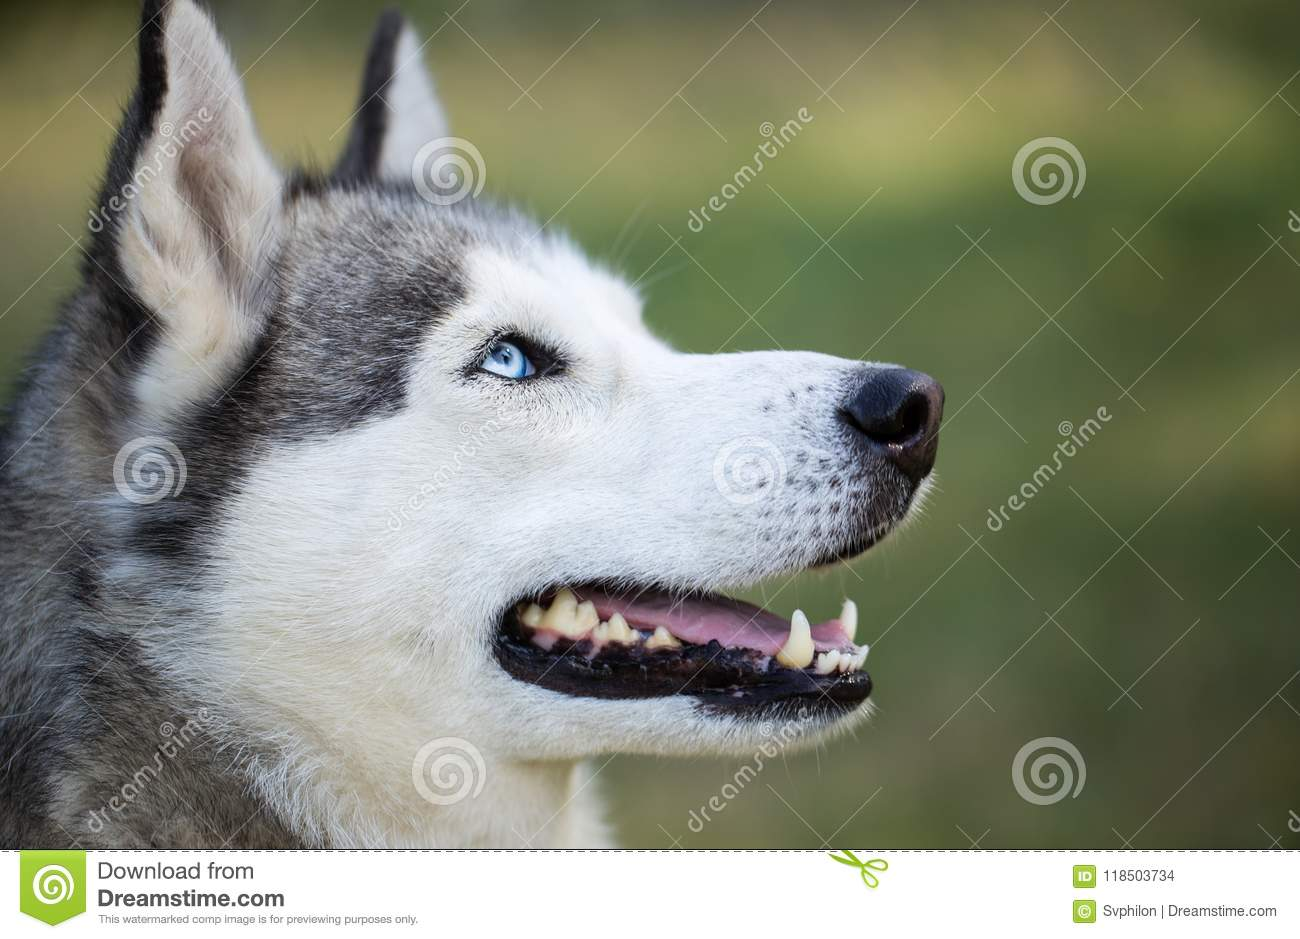 Siberian Husky Close Up Stock Photo Image Of Doggy 118503734